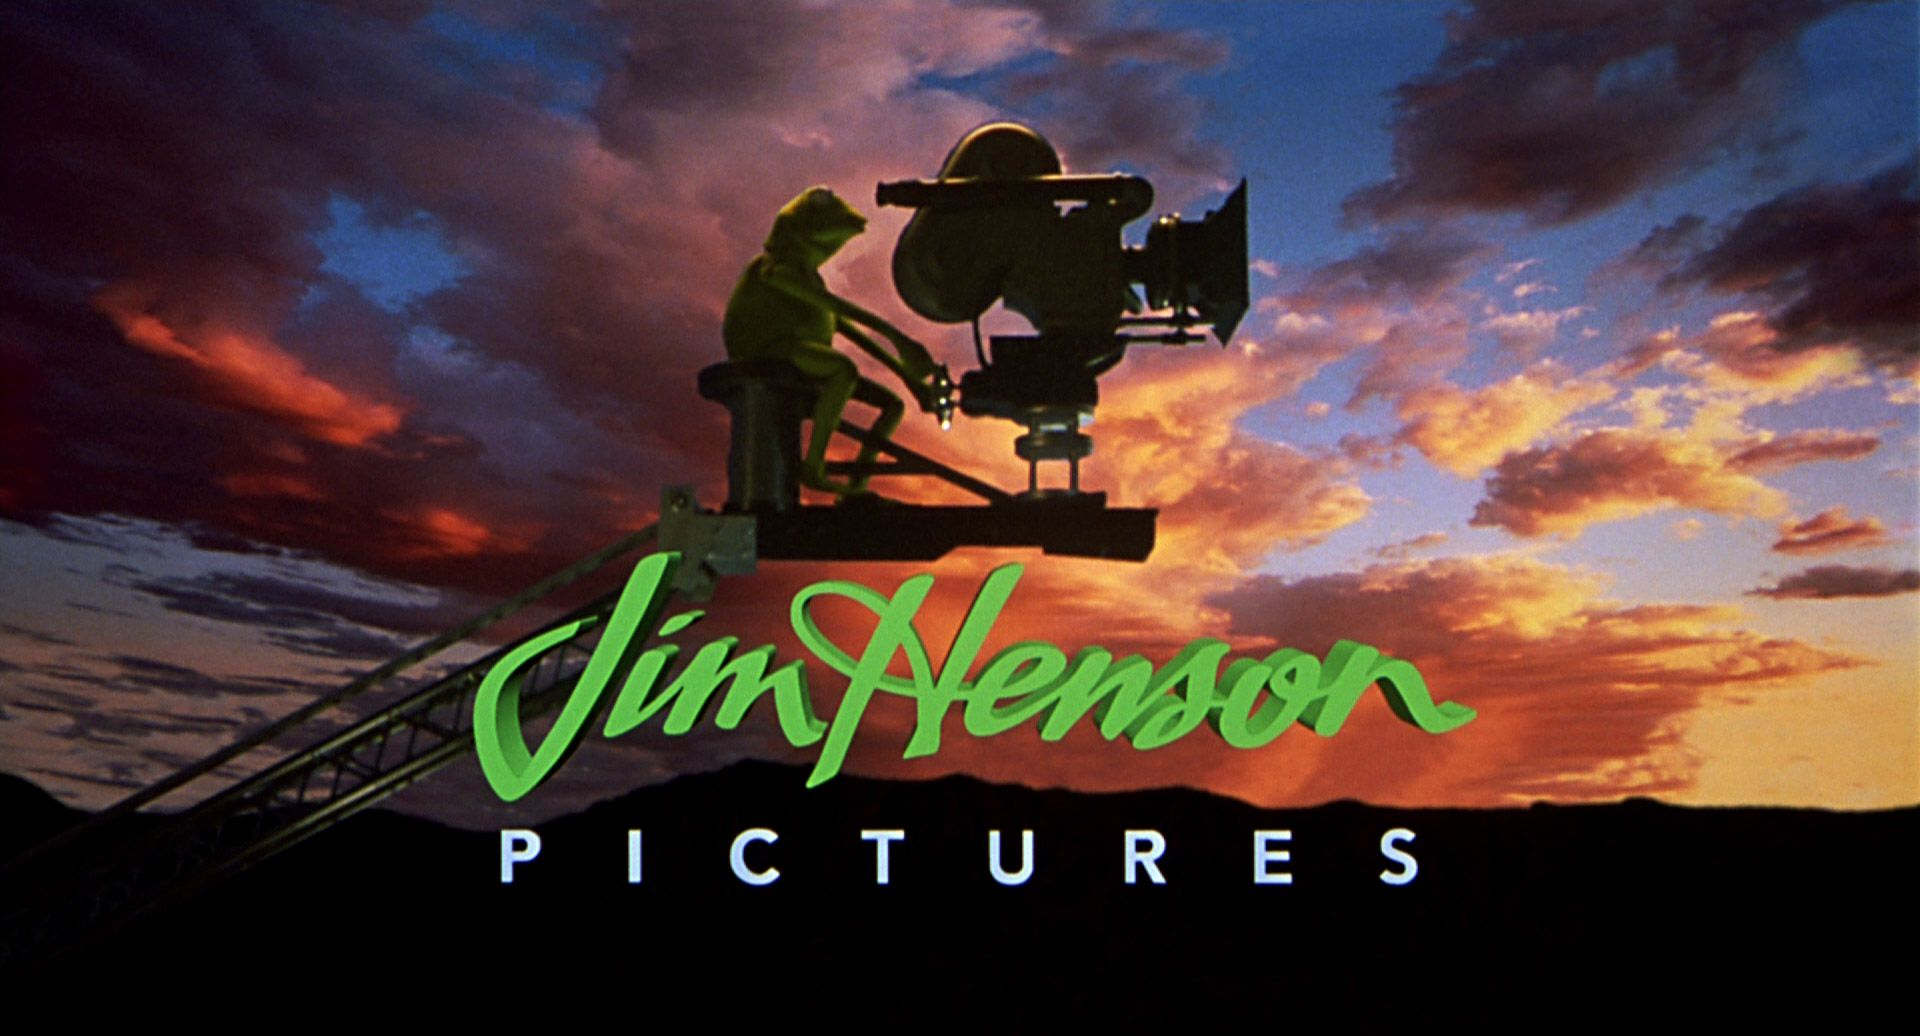 Jim Henson Pictures.